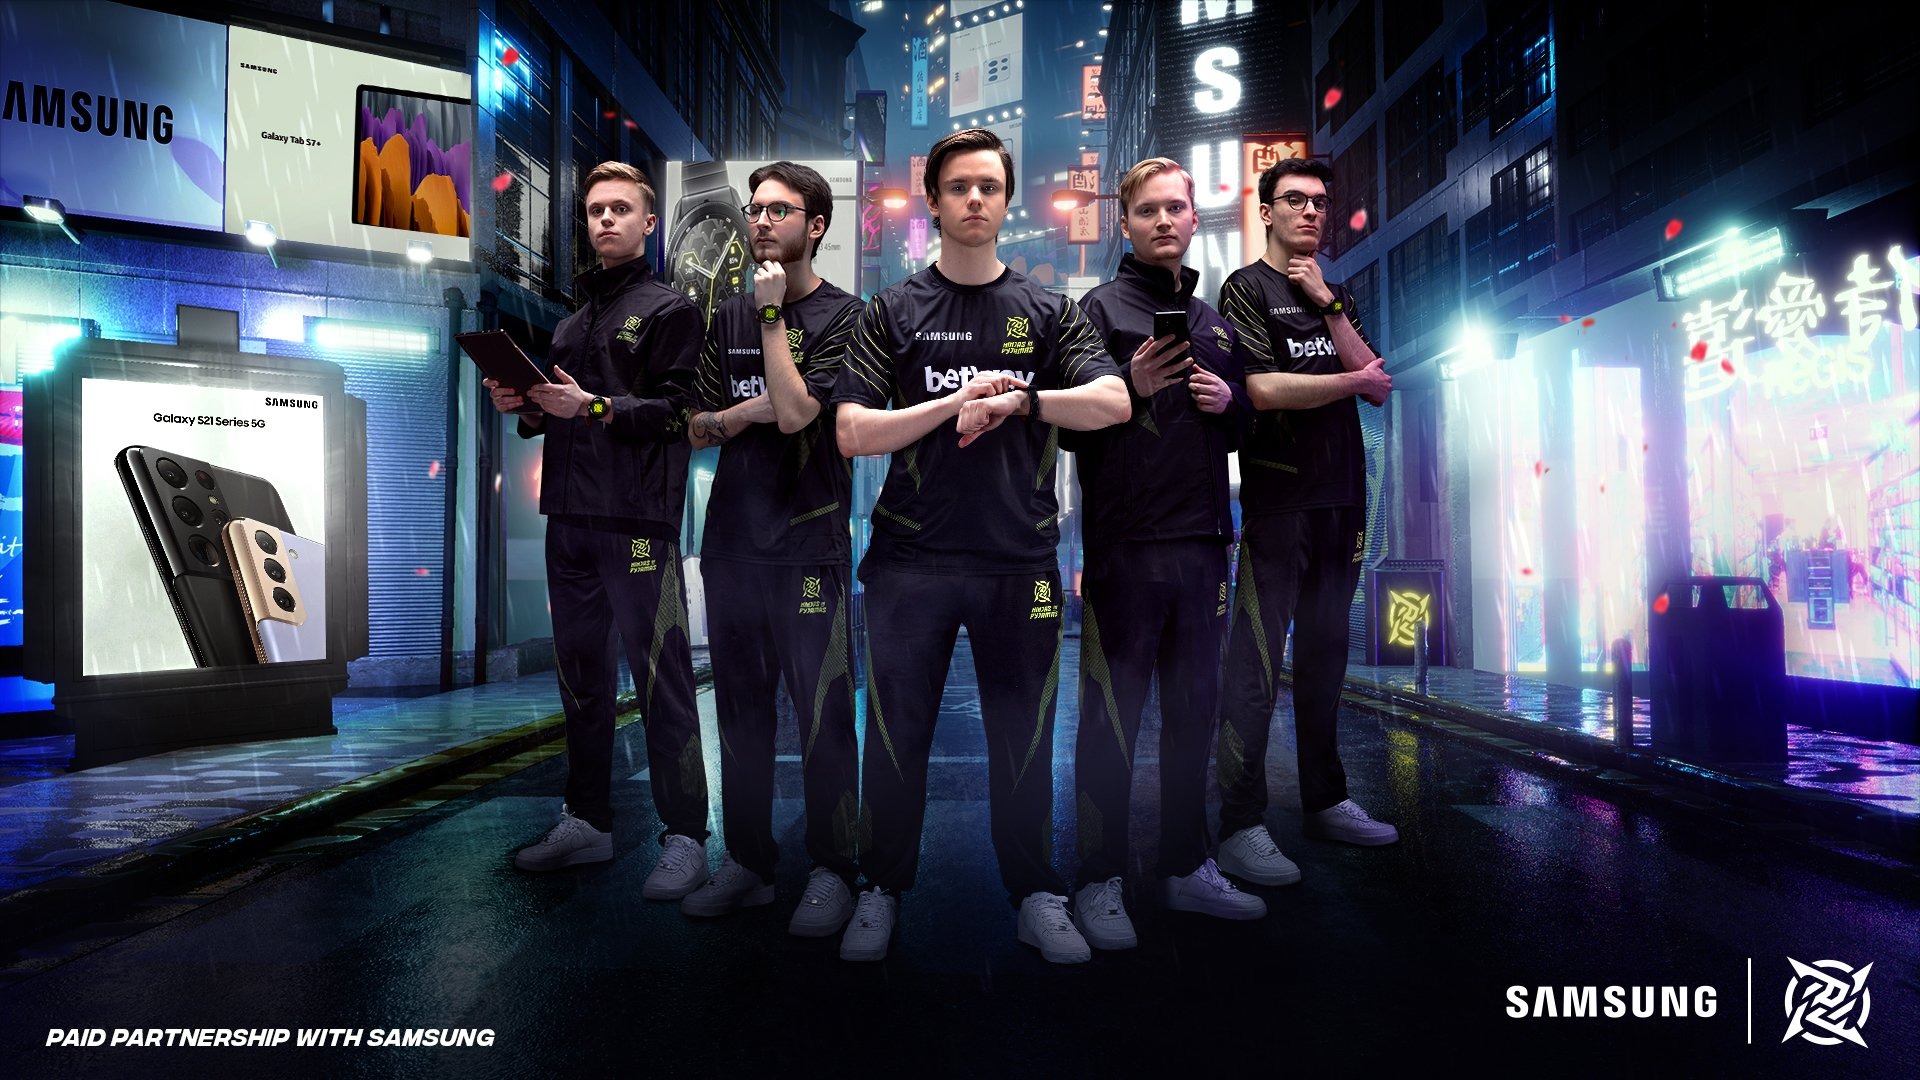 NiP Partner With Samsung In Three-Year Deal